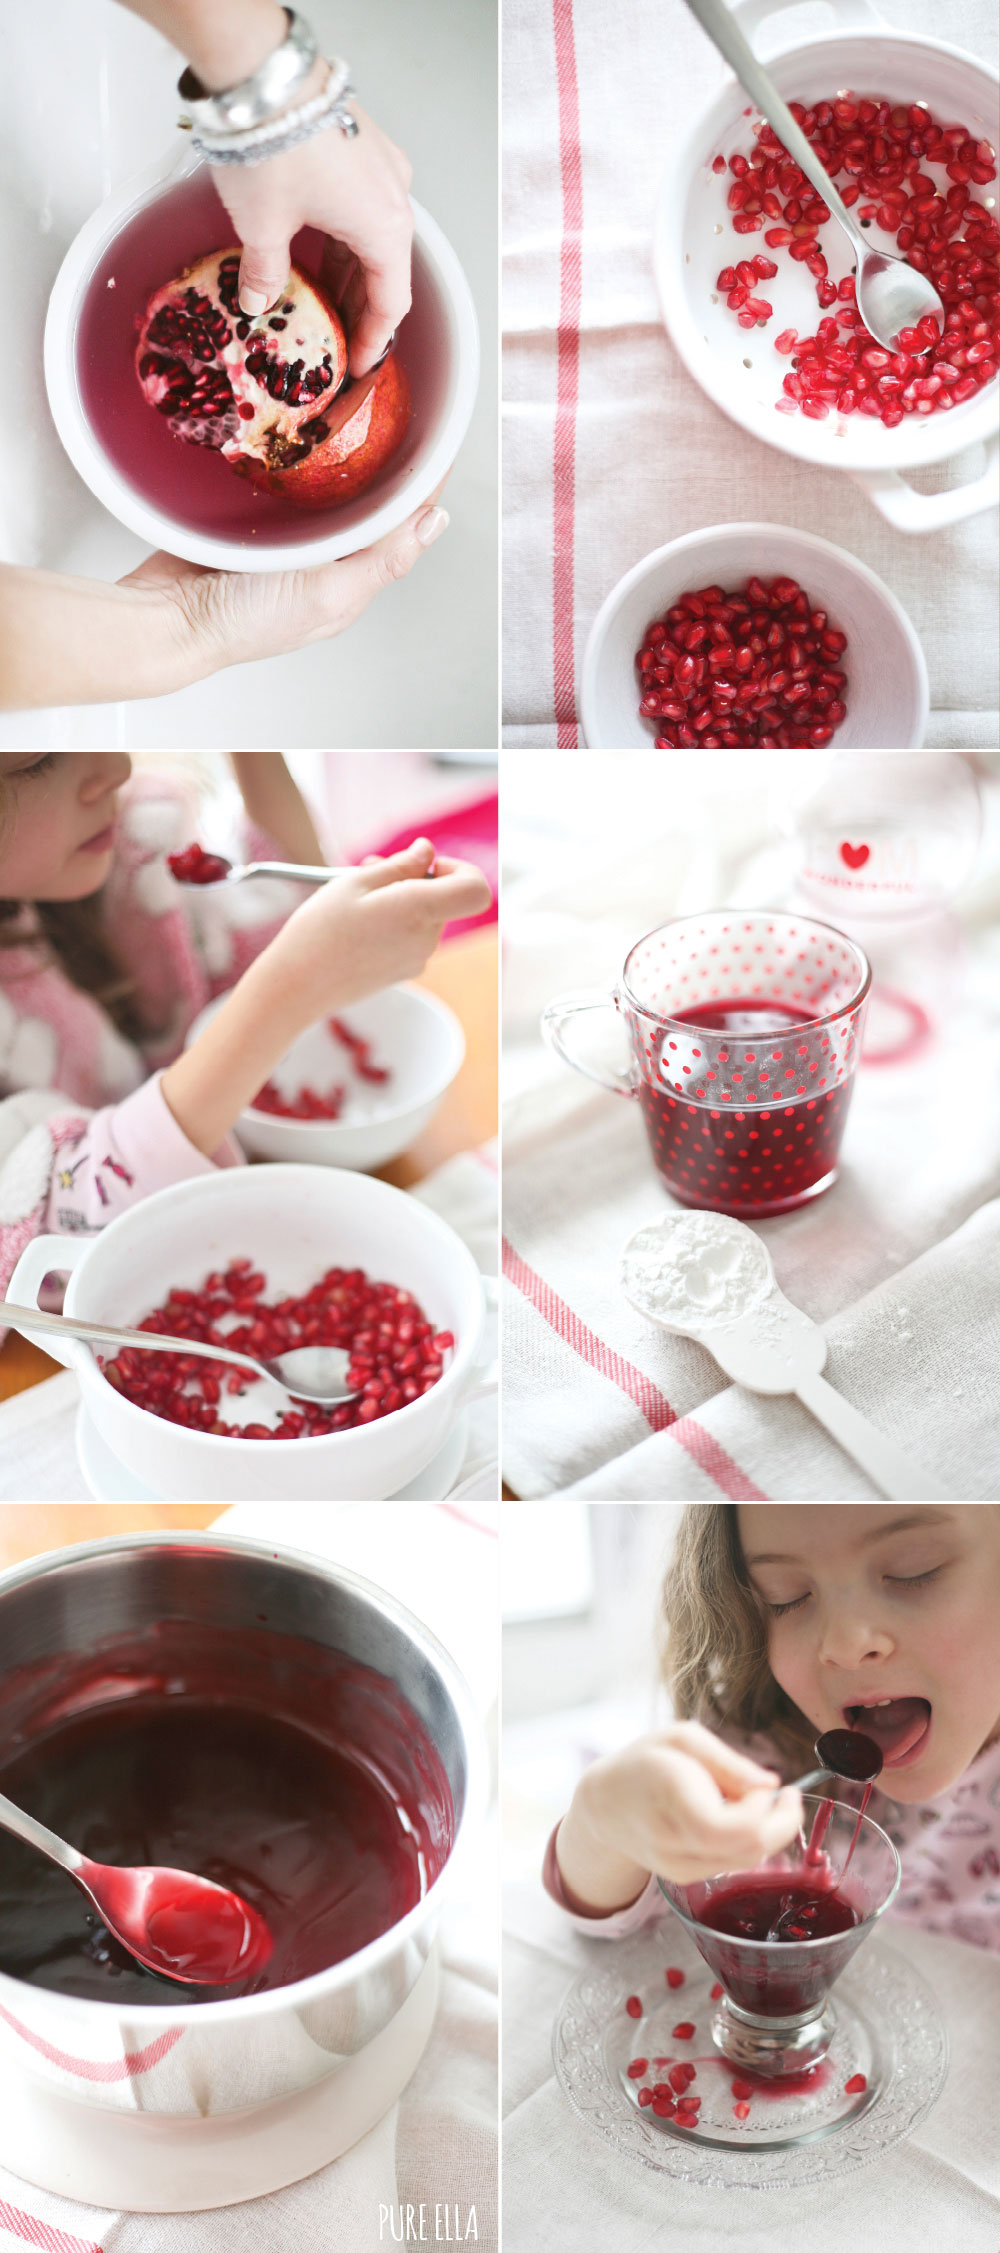 Pure-Ella-Pomegranate-Pudding-vegan2